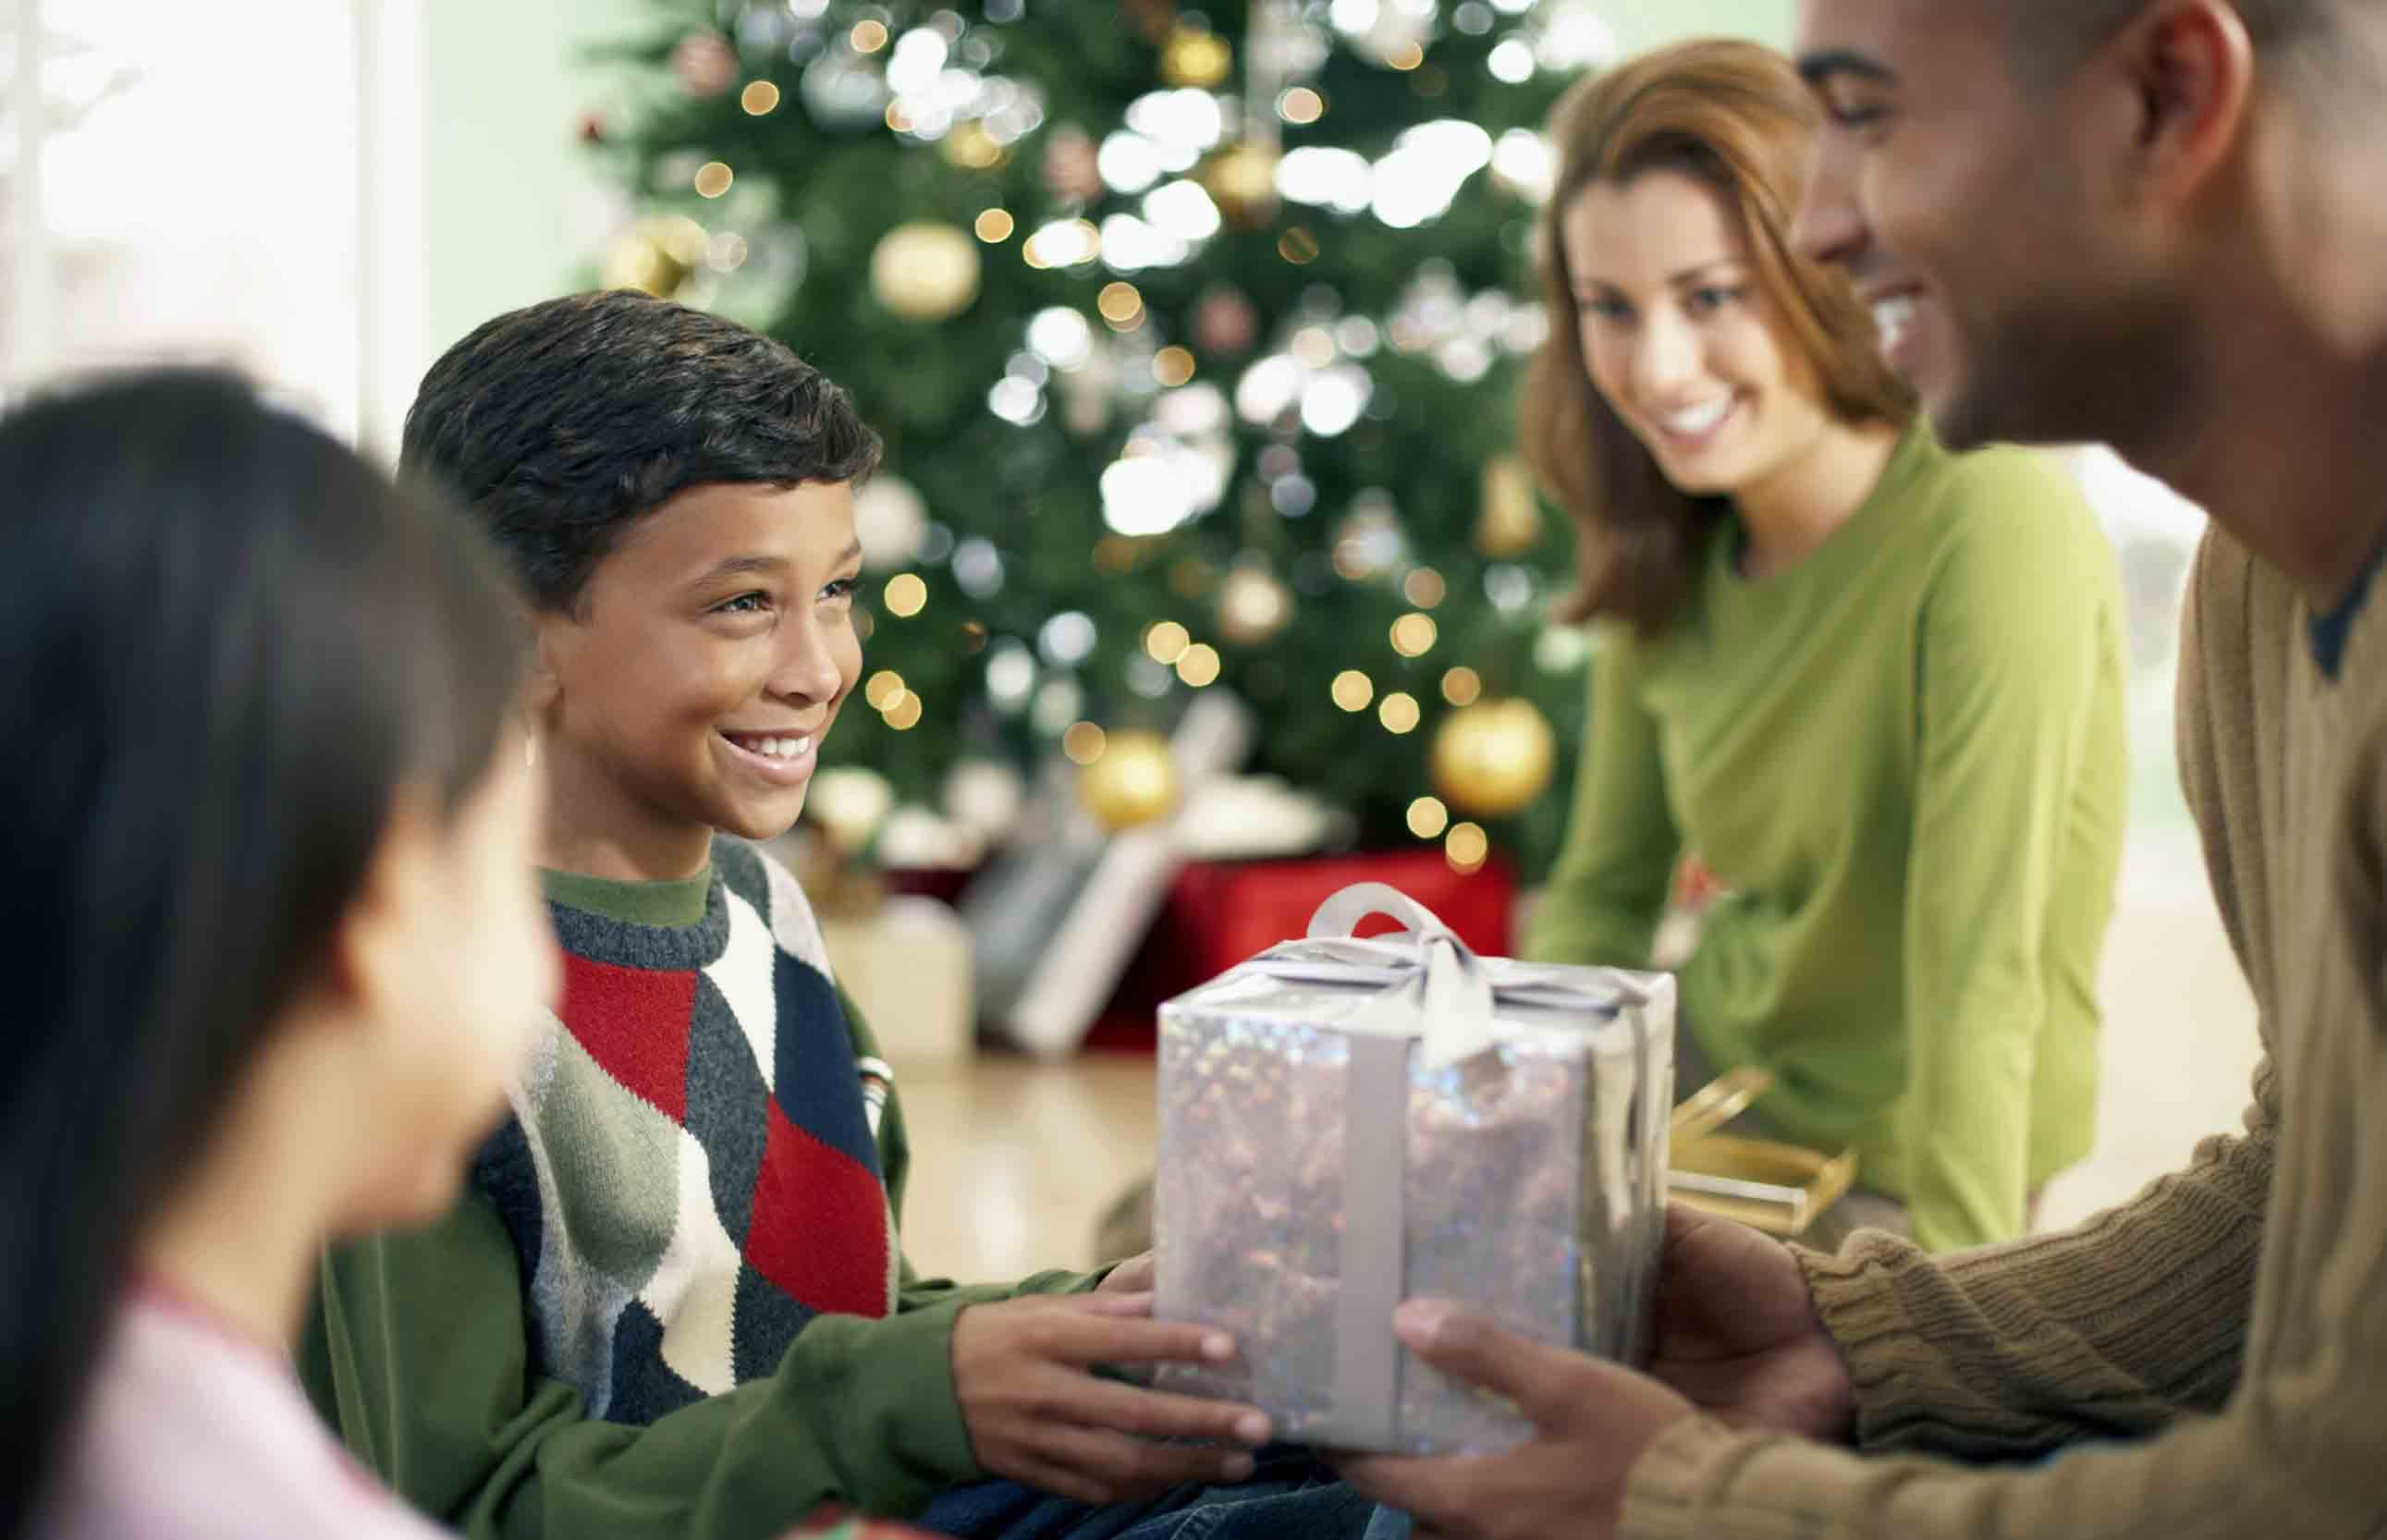 Wait, Some Banks Let You Skip Payments During the Holidays?